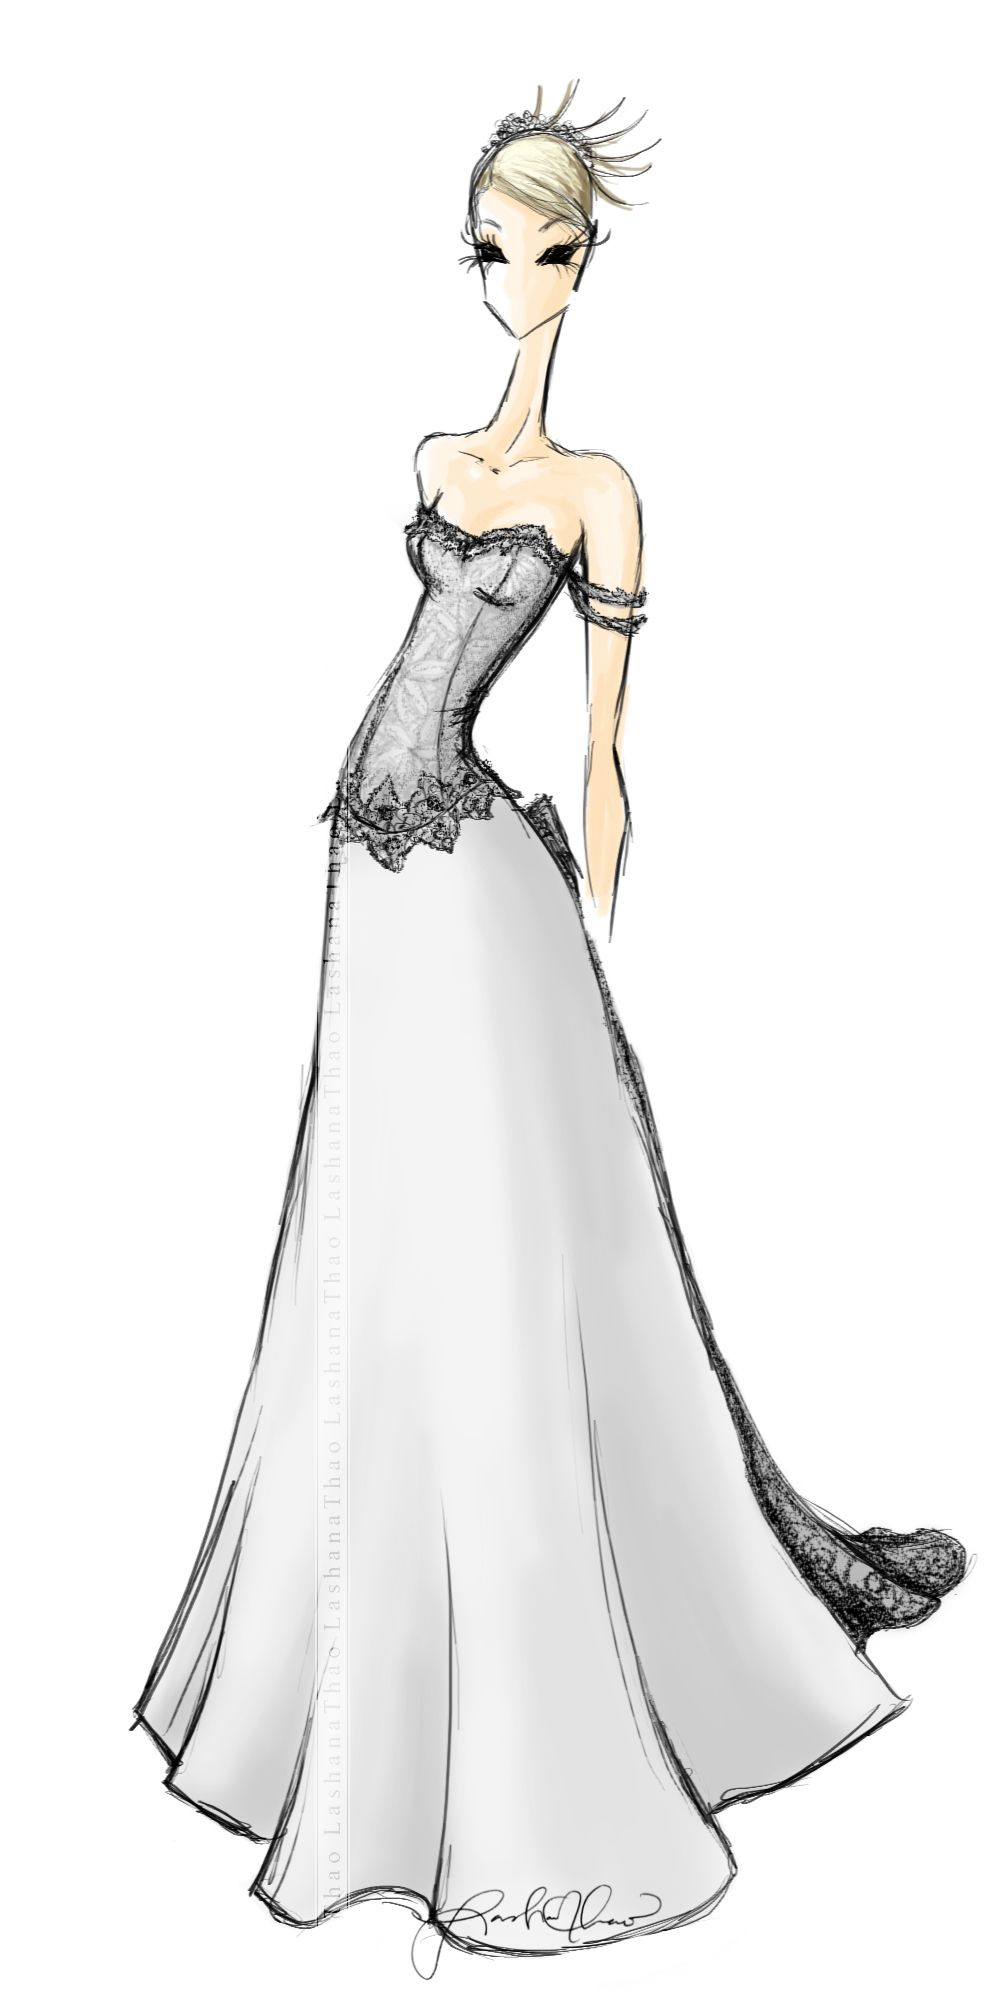 Free wedding dress sketches - Fashion Design Making A Comeback On Pinterest Fashion Design Drawi